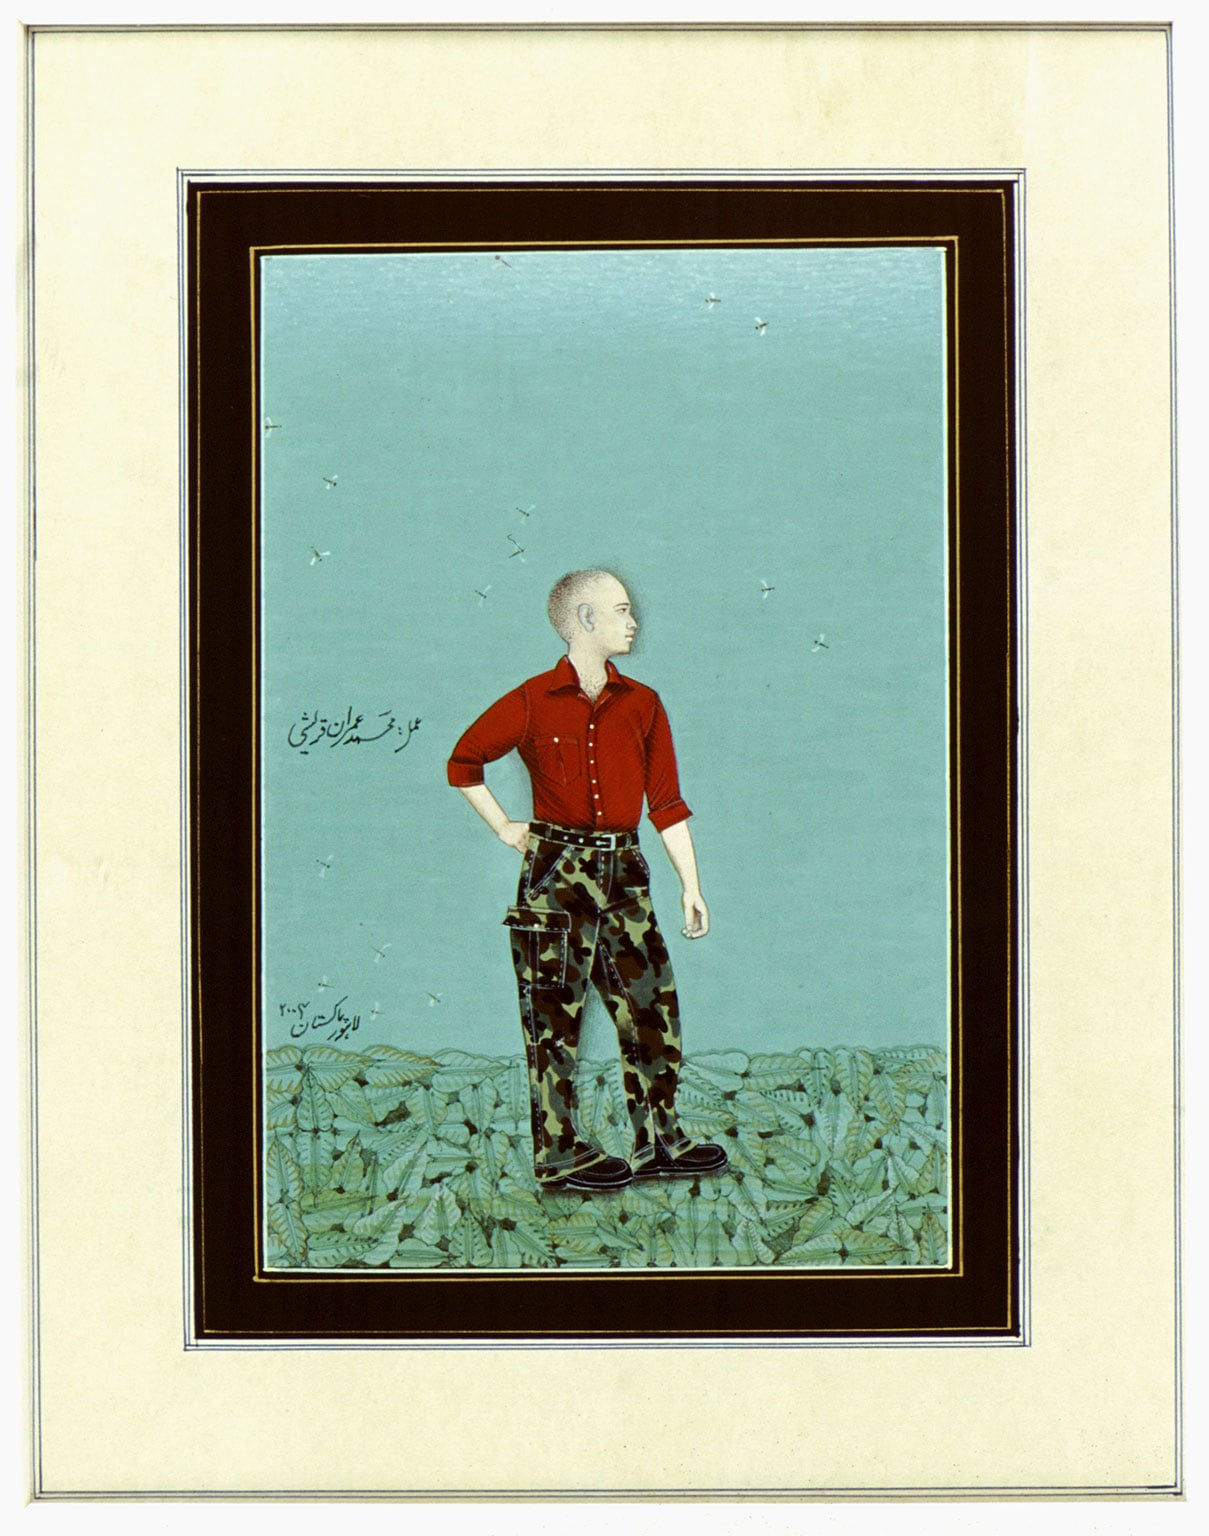 Imran Qureshi, Standing figure with camouflage pantaloons, 2004 - © The artist